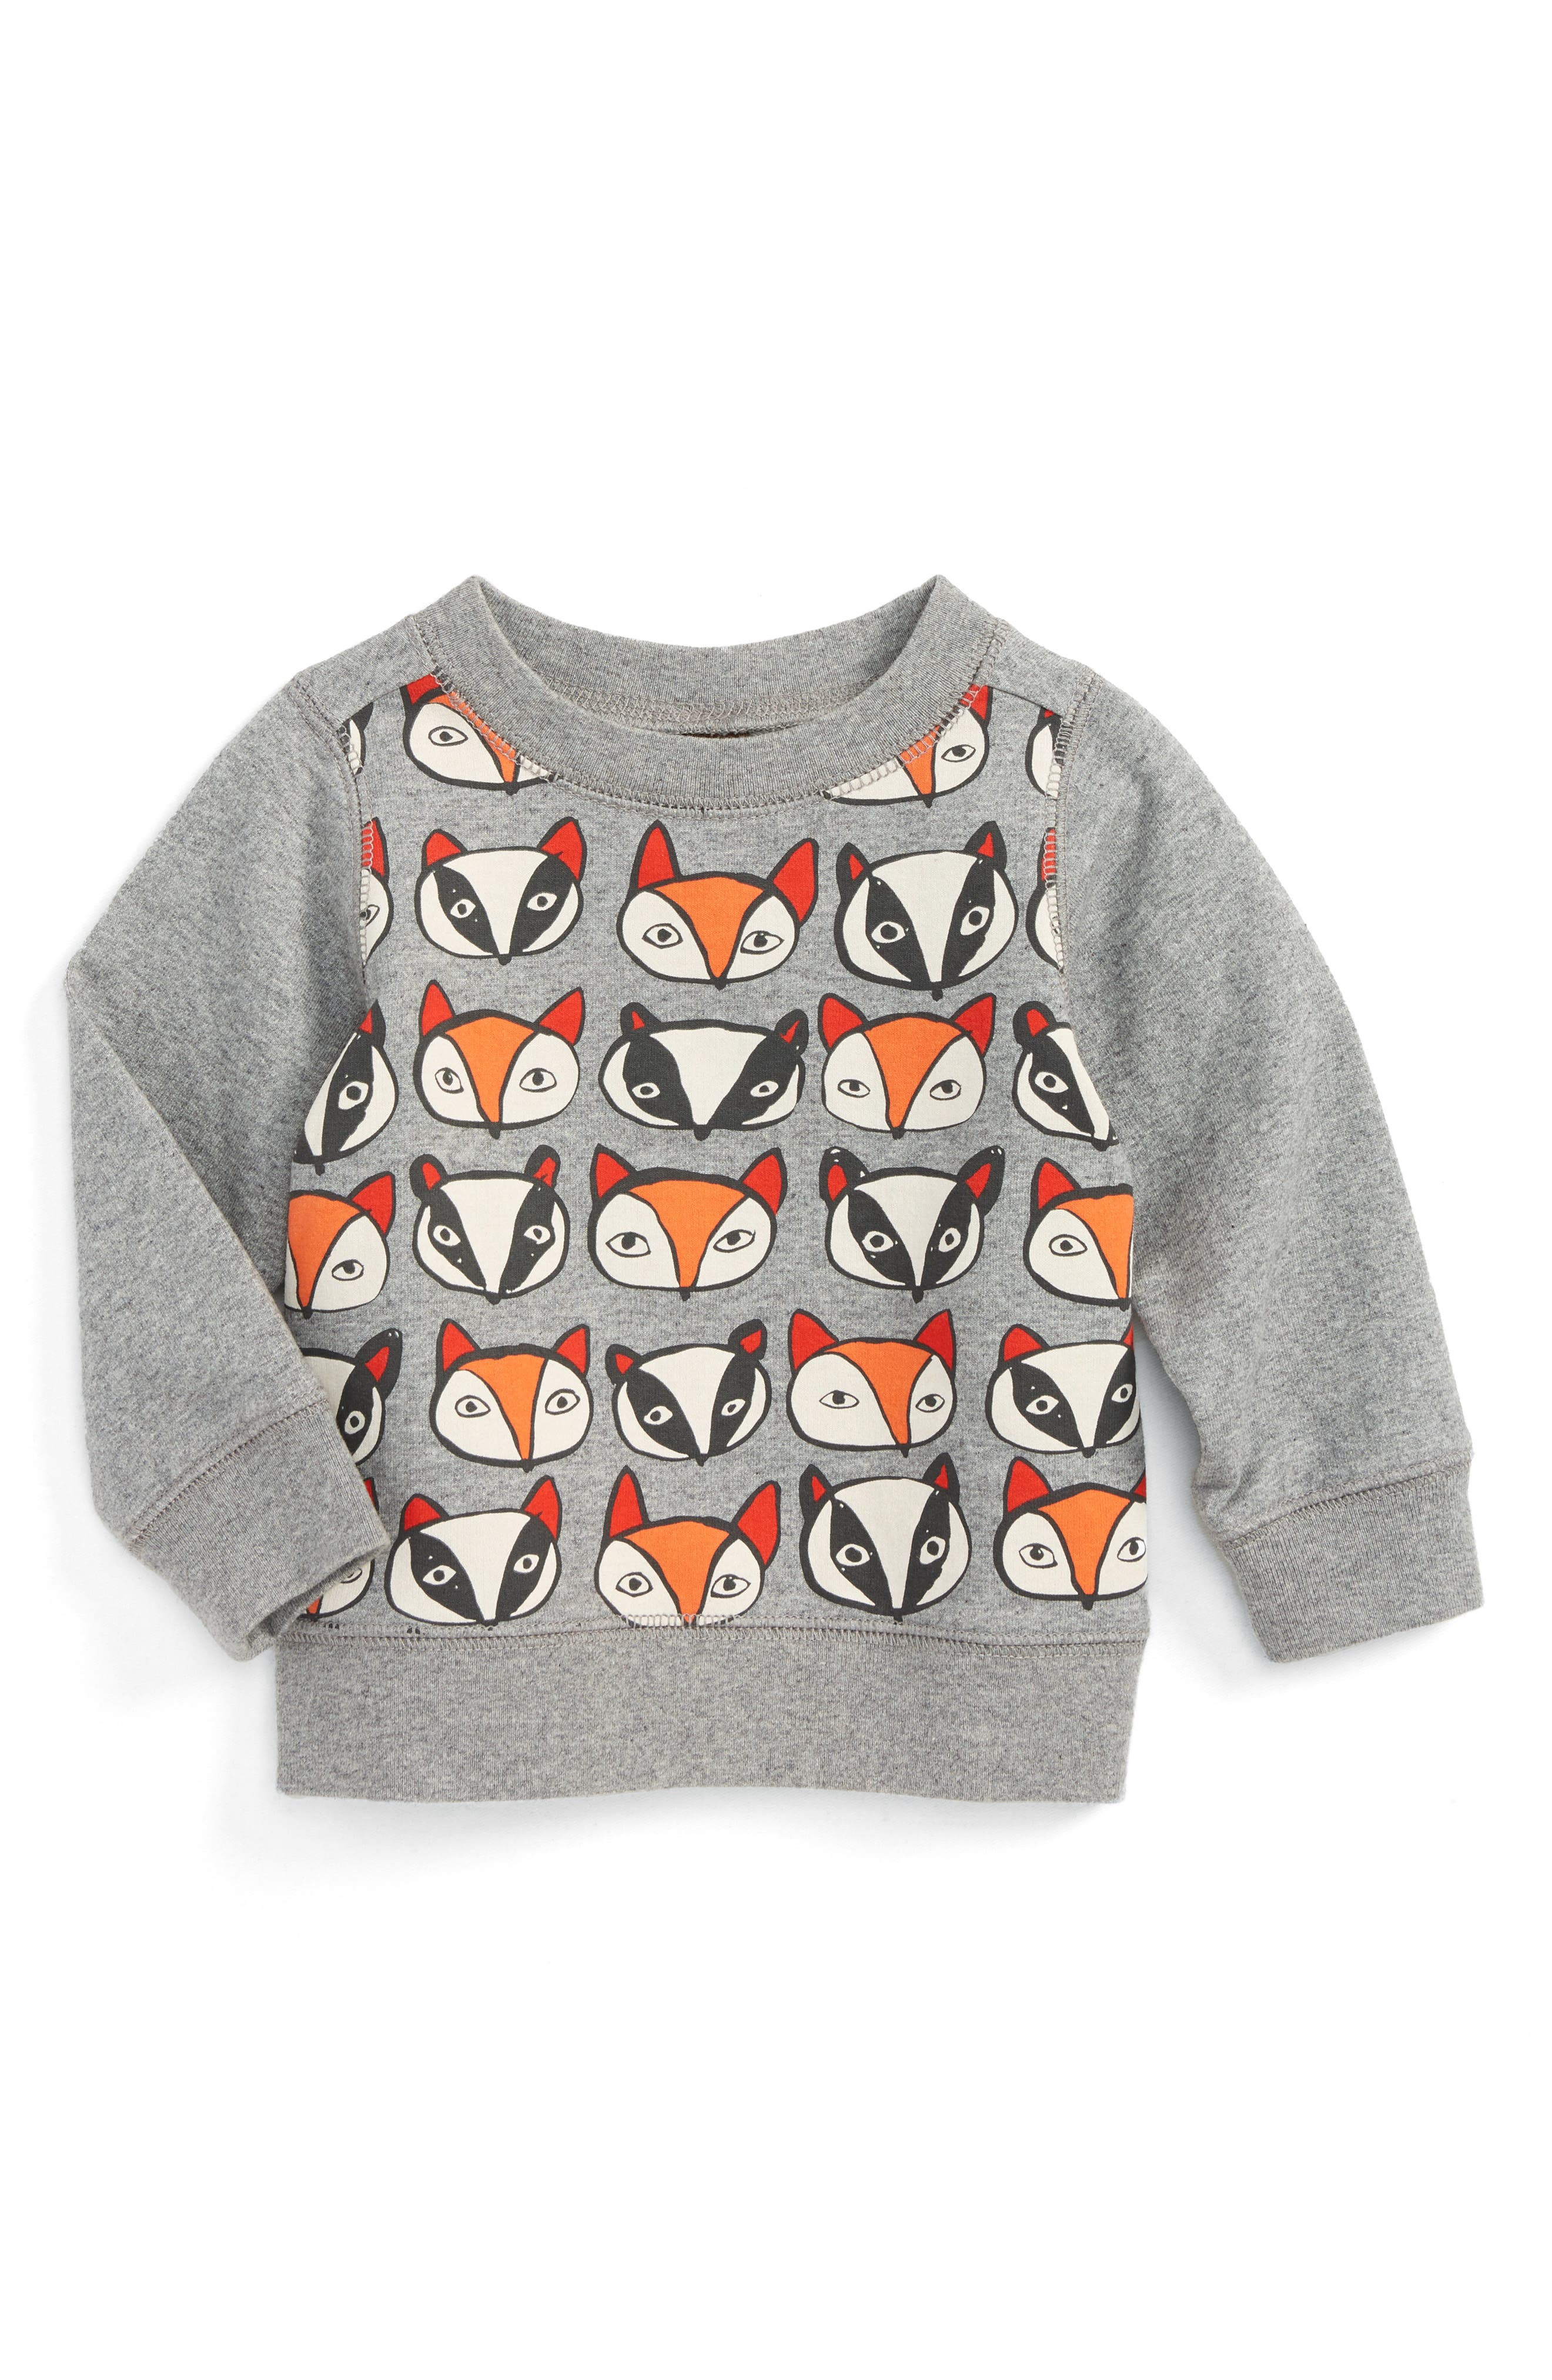 Main Image - Tea Collection Fox & Badger Print Sweater (Baby Boys)